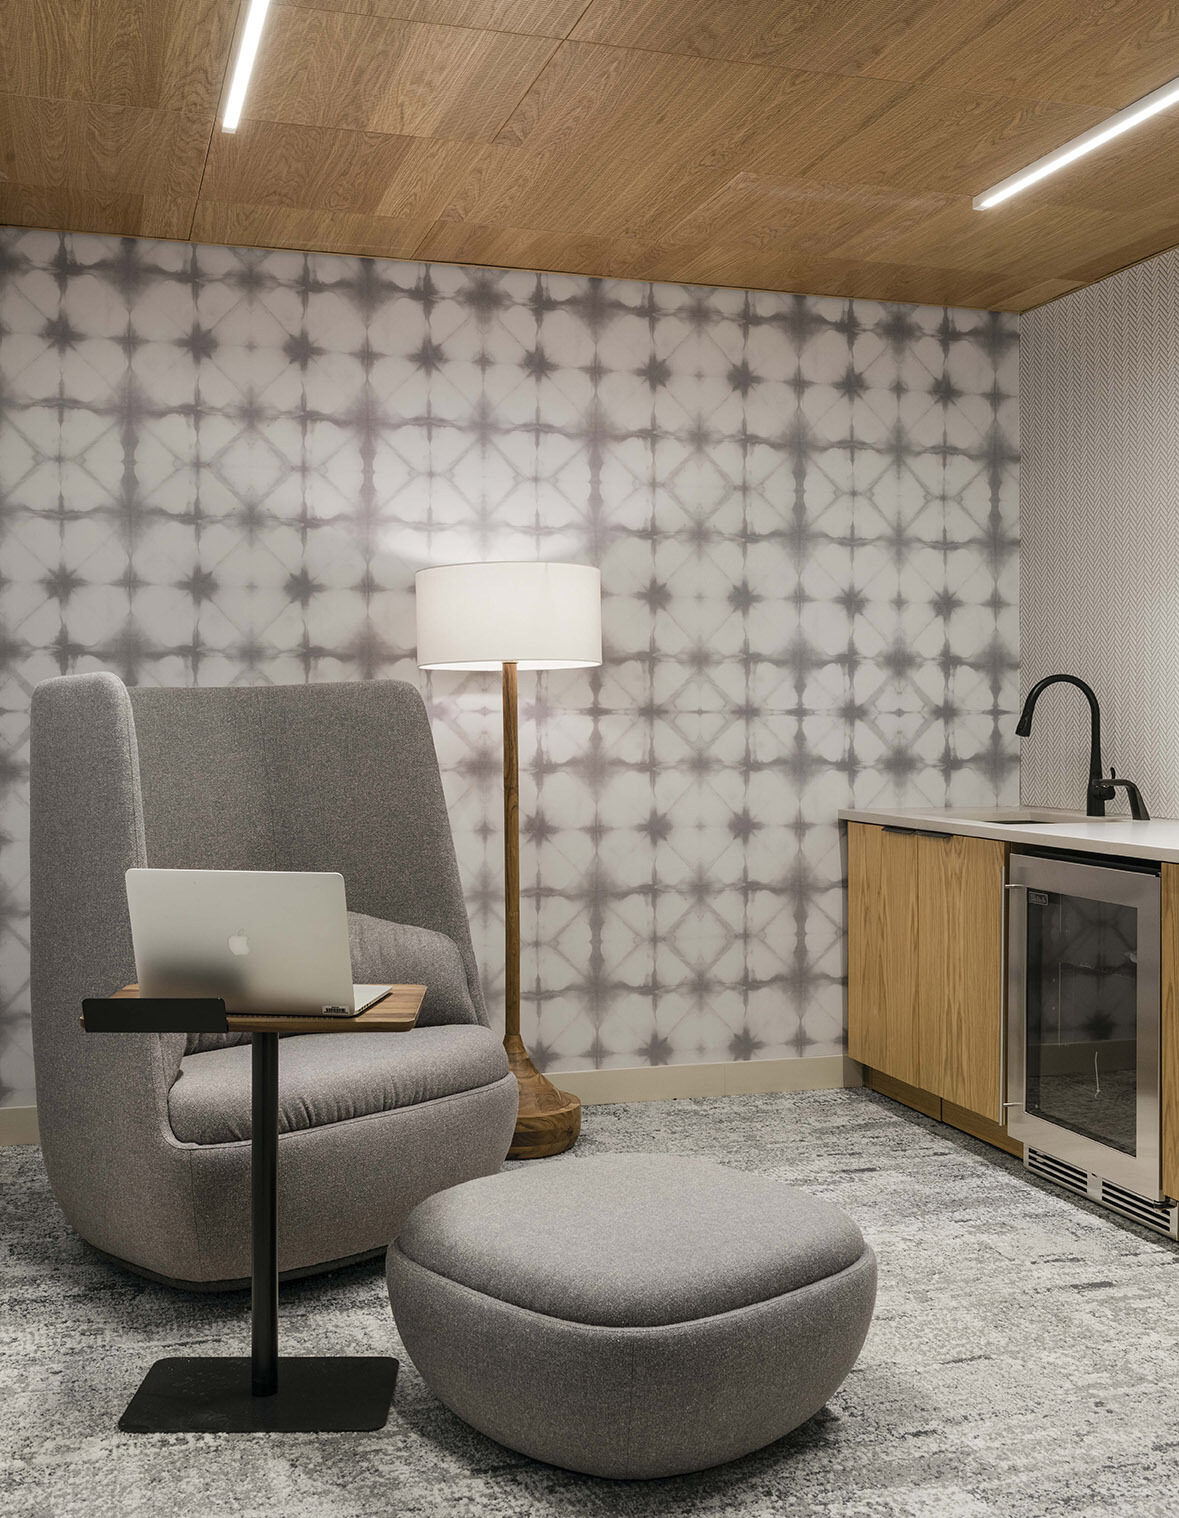 Boston Dynamics private mother's room recovery area, quiet space with comfortable seating office space